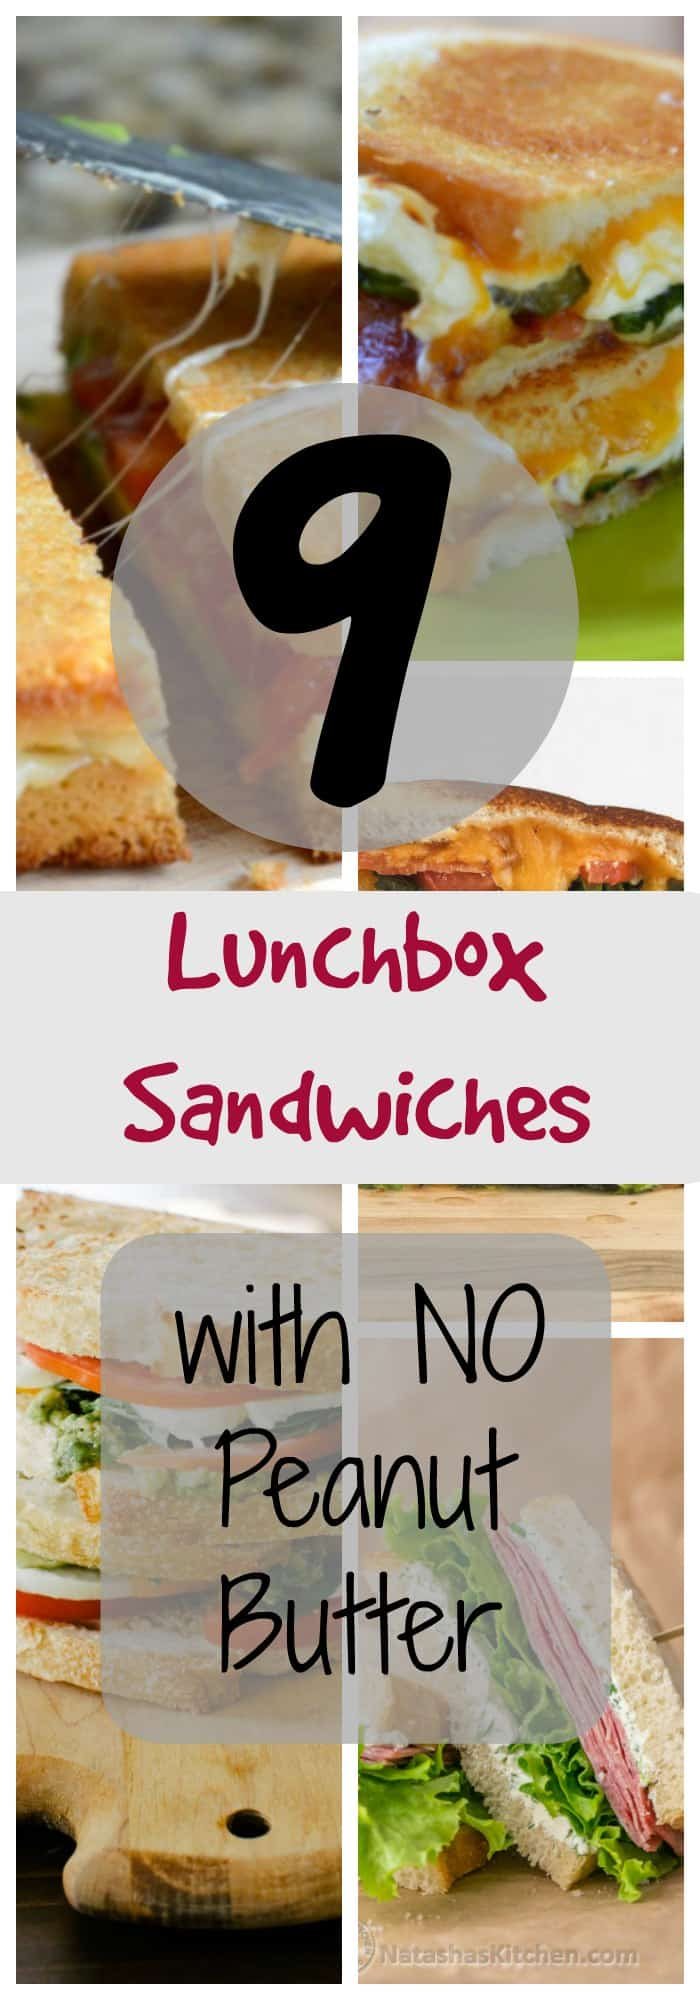 9 Lunch box sandwiches that don't include peanut butter!